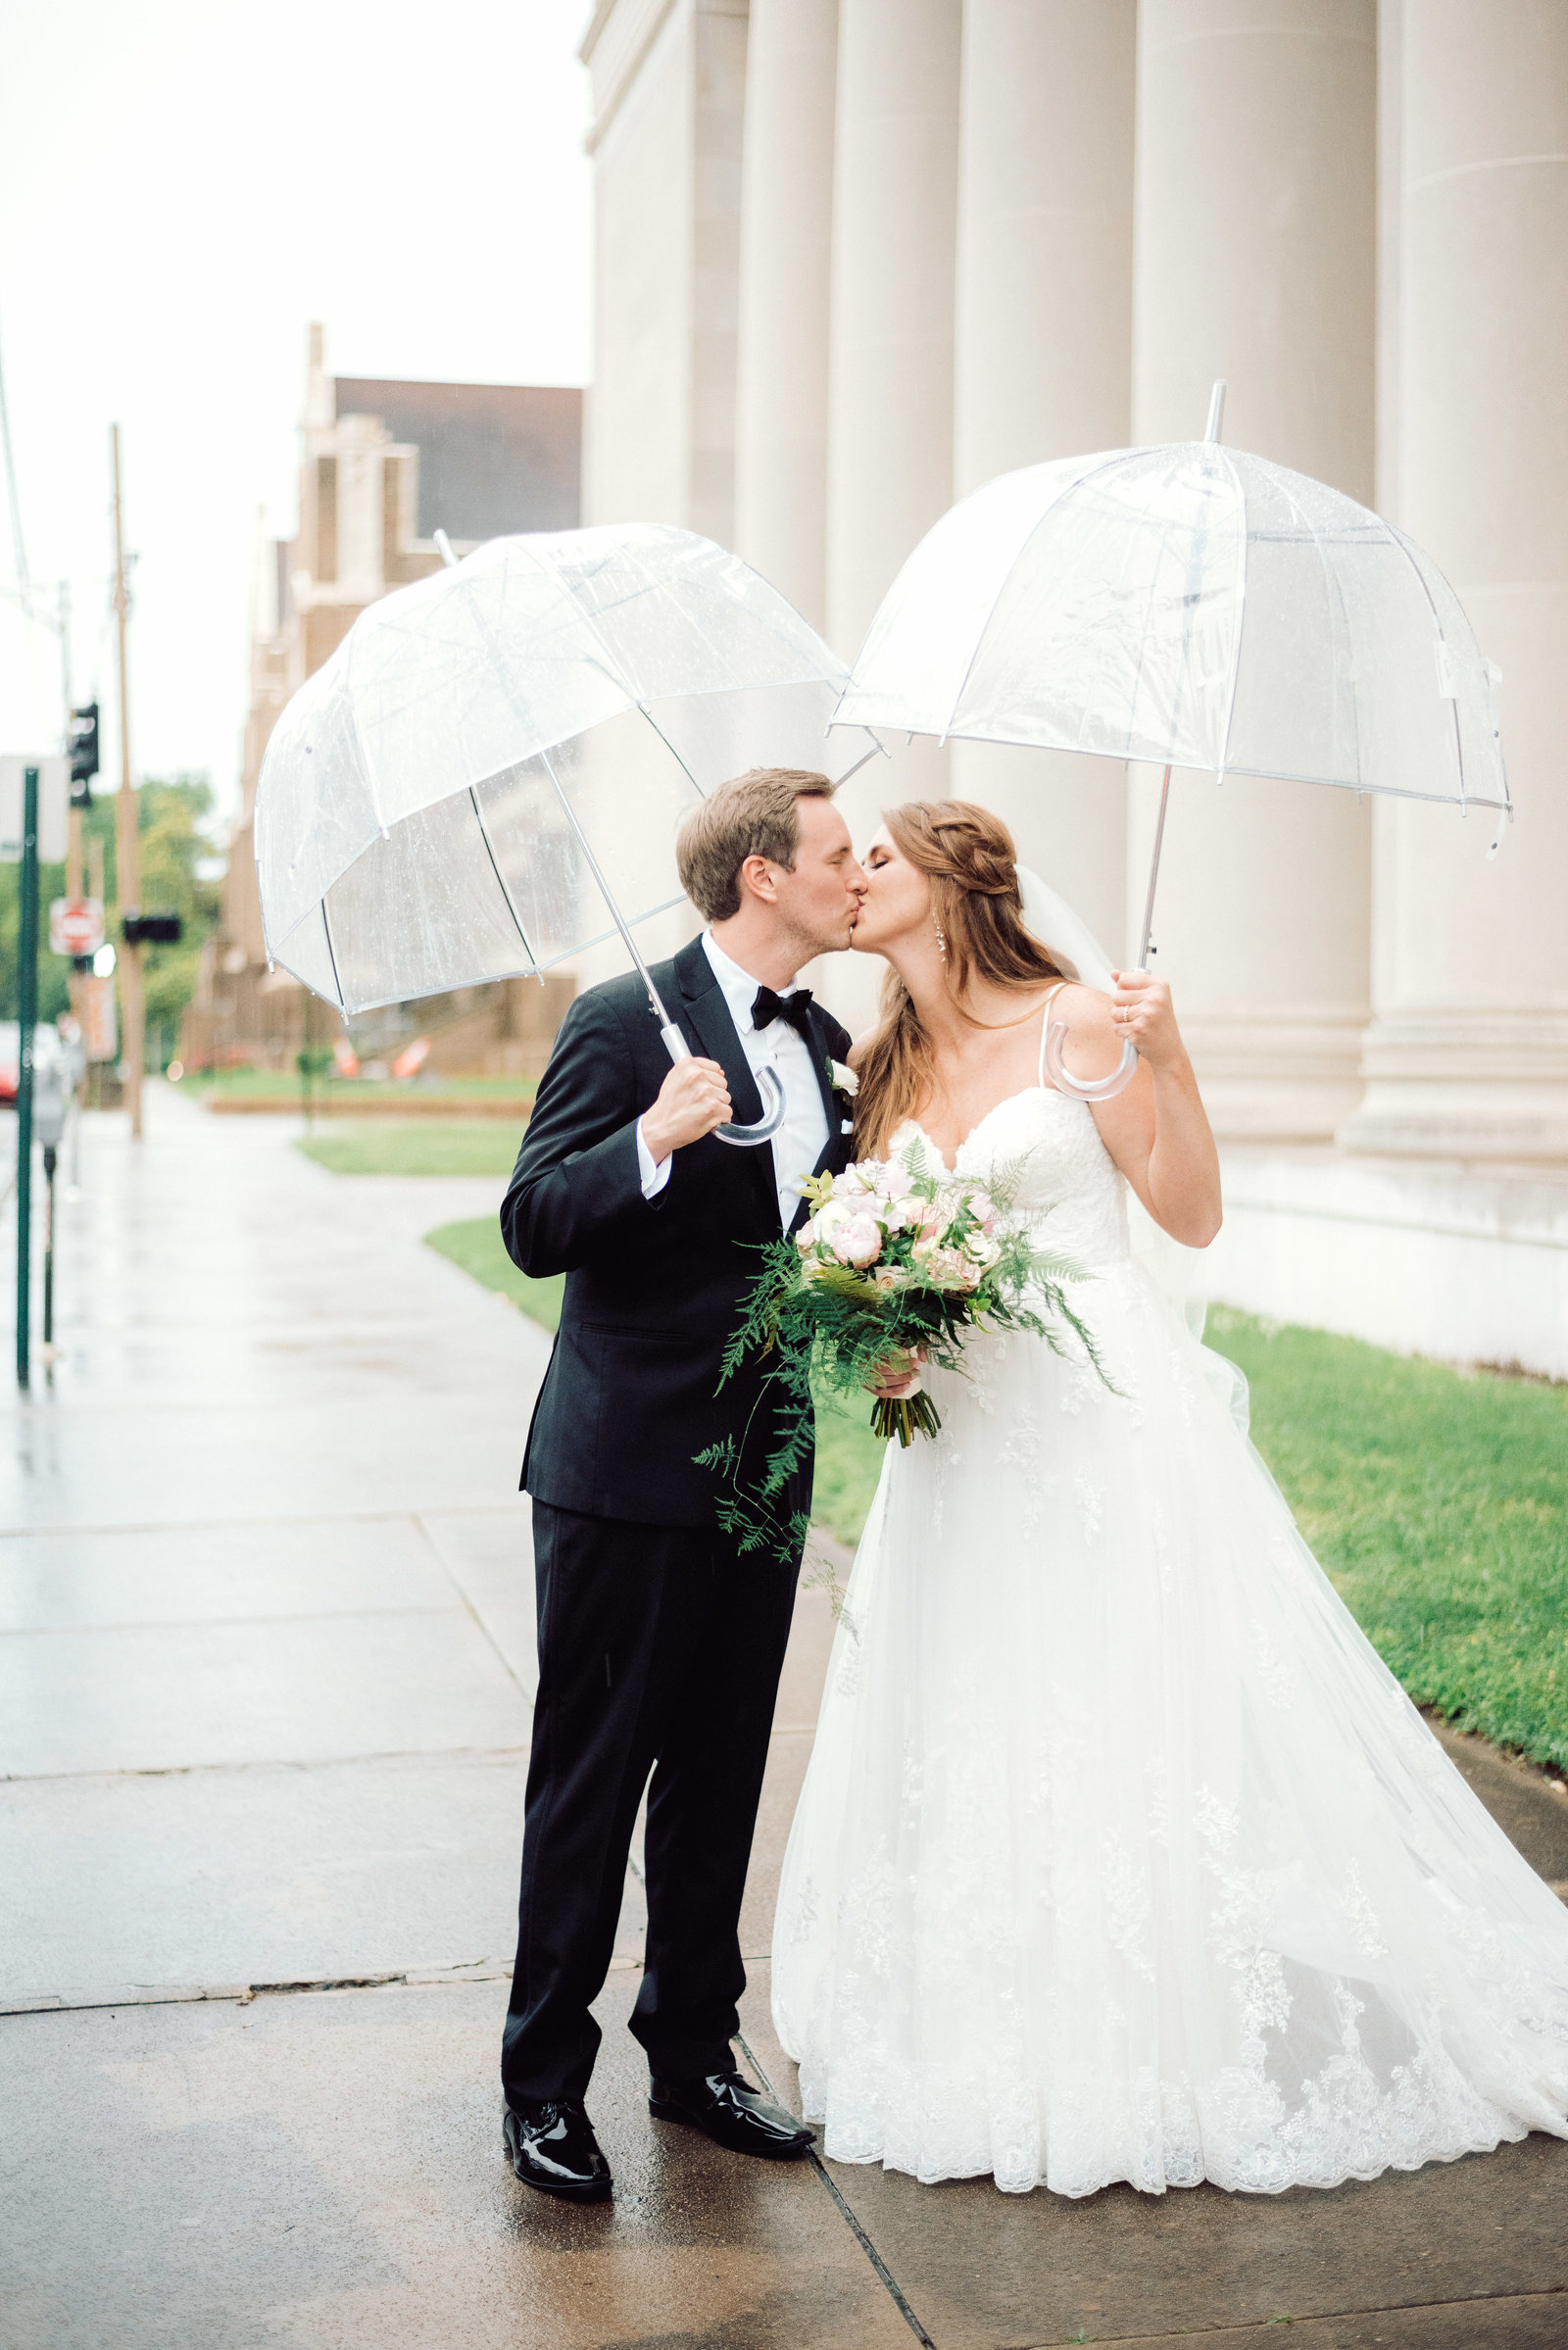 Rain doesn't mess up your wedding day / Sterling Imageworks